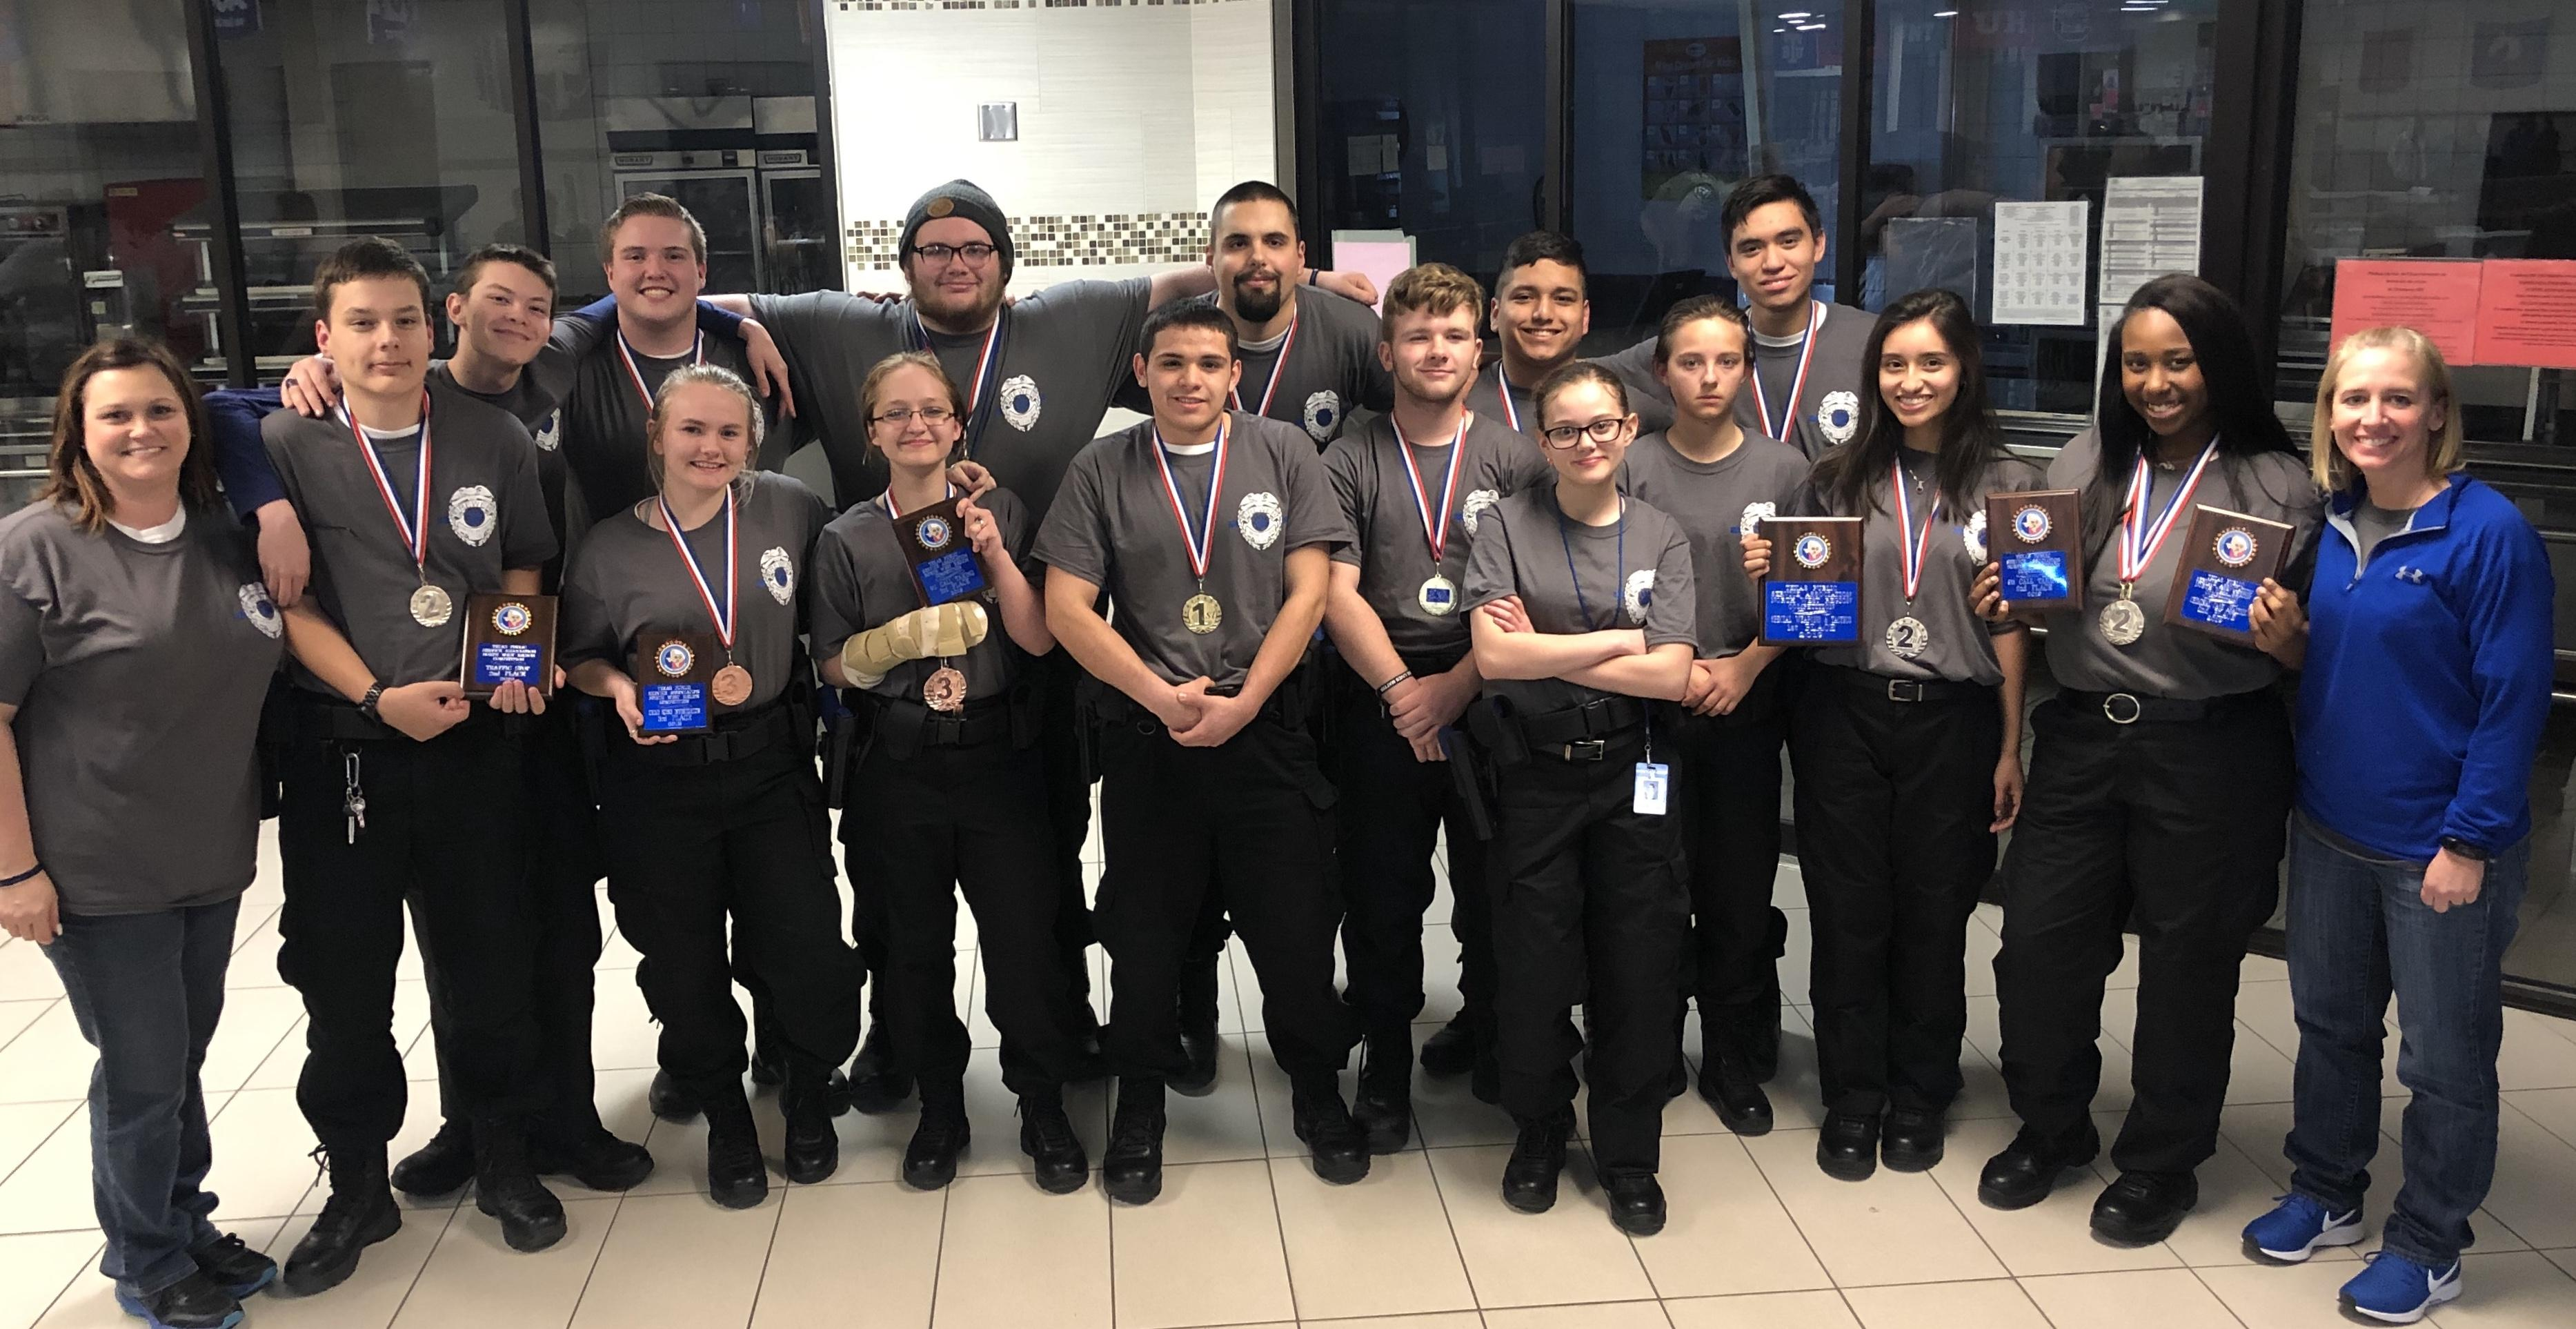 For the third consecutive year, Brewer High School Law Enforcement students will advance to the state competition.